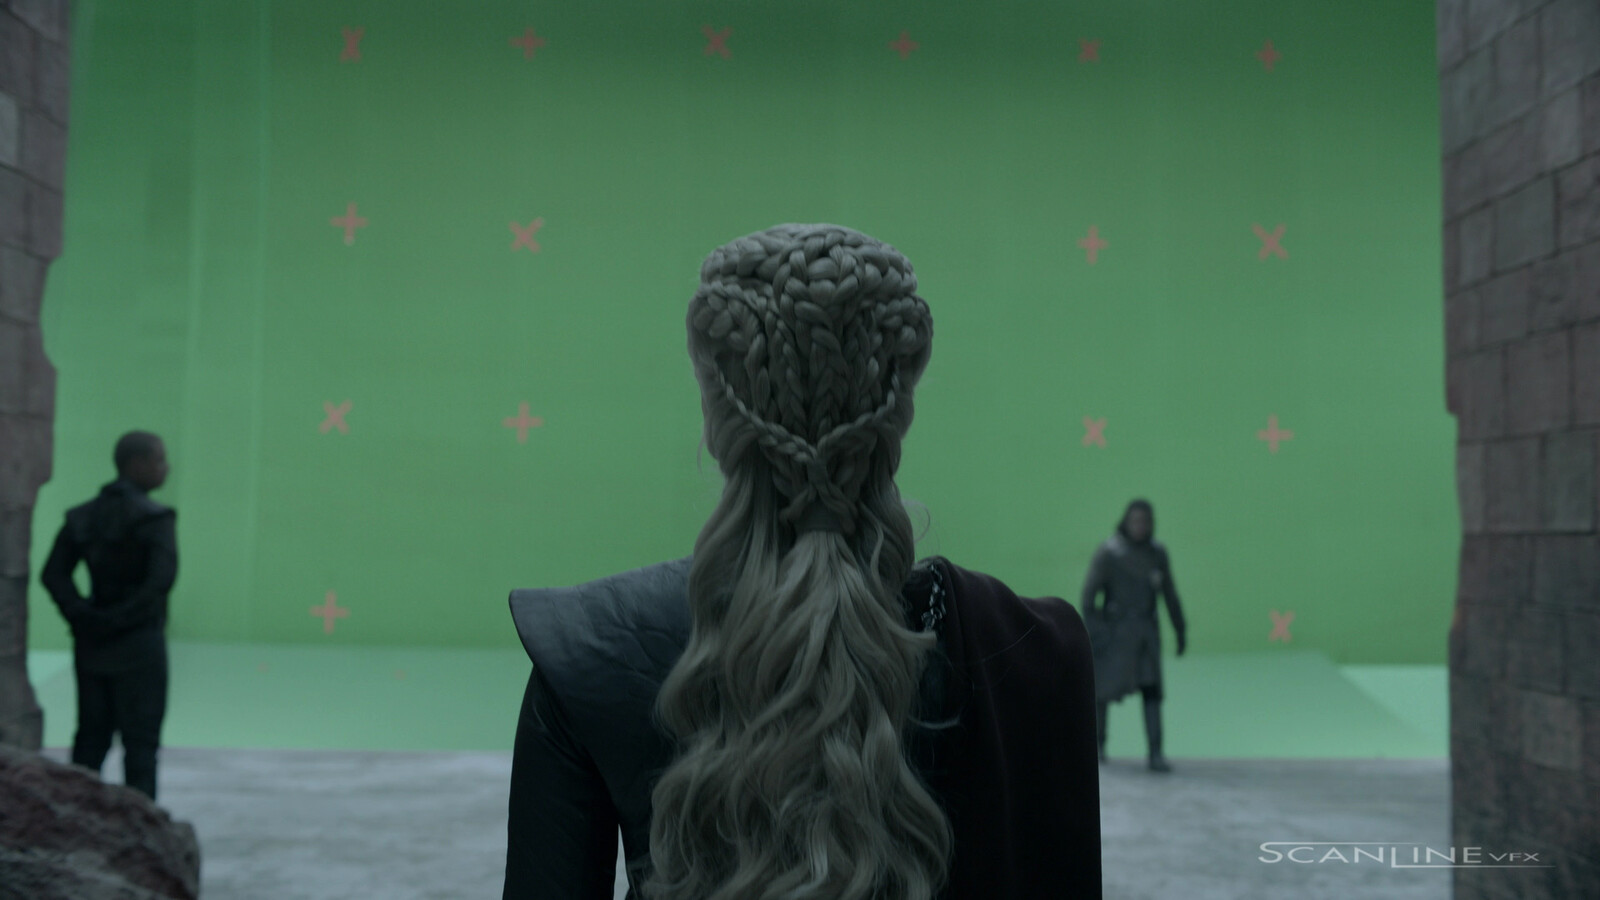 The Red Keep Plaza - Step 01: Green Screen / Original Plate.